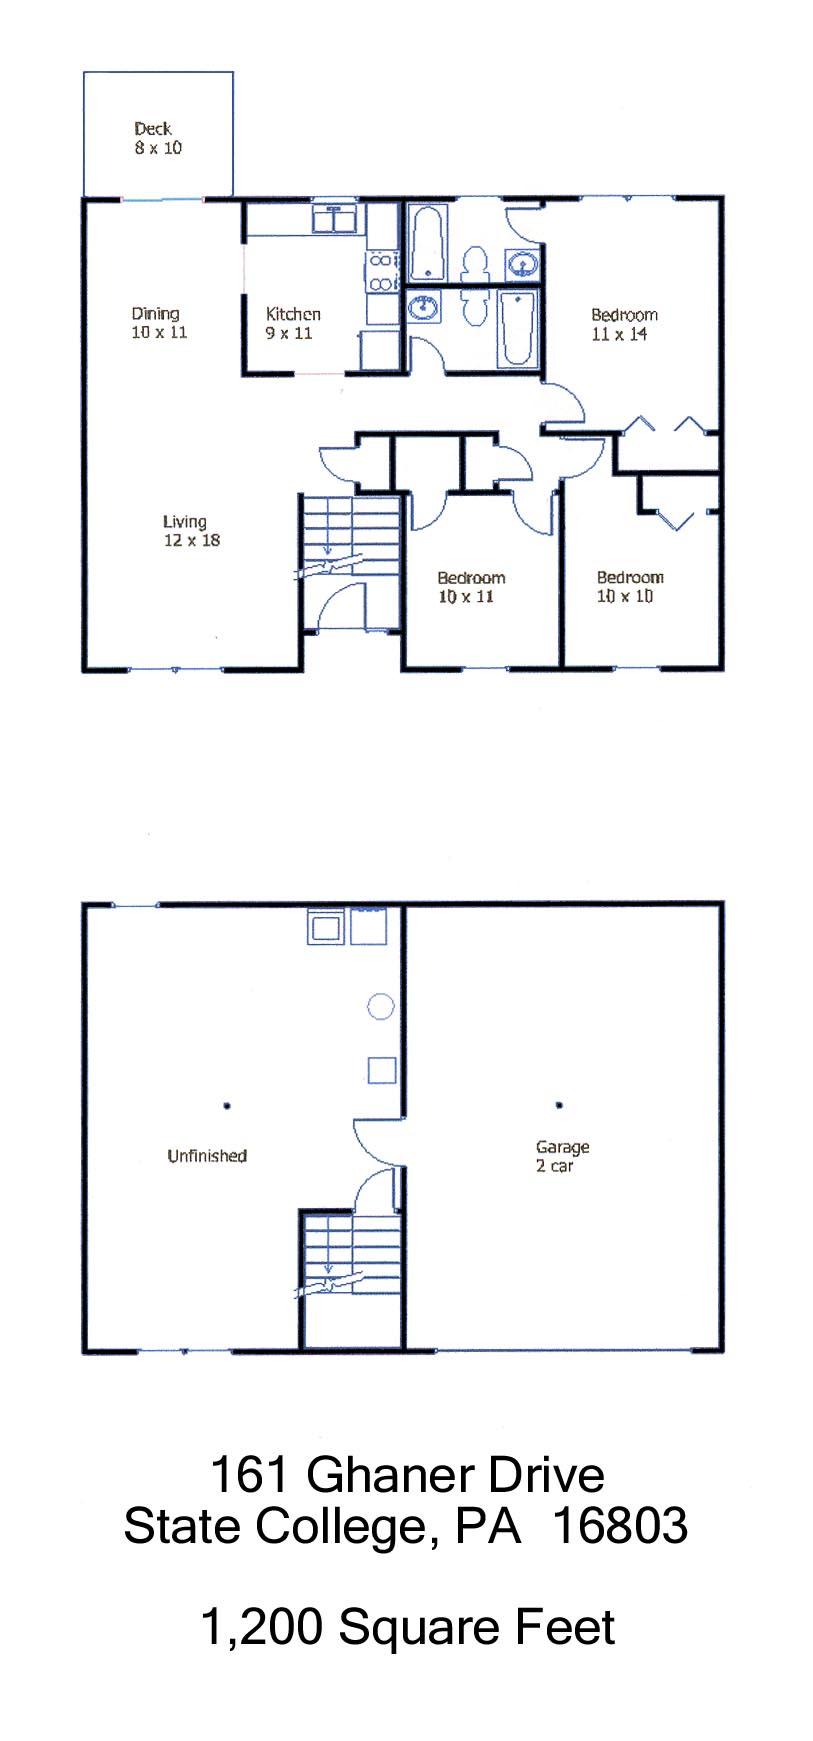 Floor plan of the 3 bedroom house for rent at 161 Ghaner Drive, State College PA